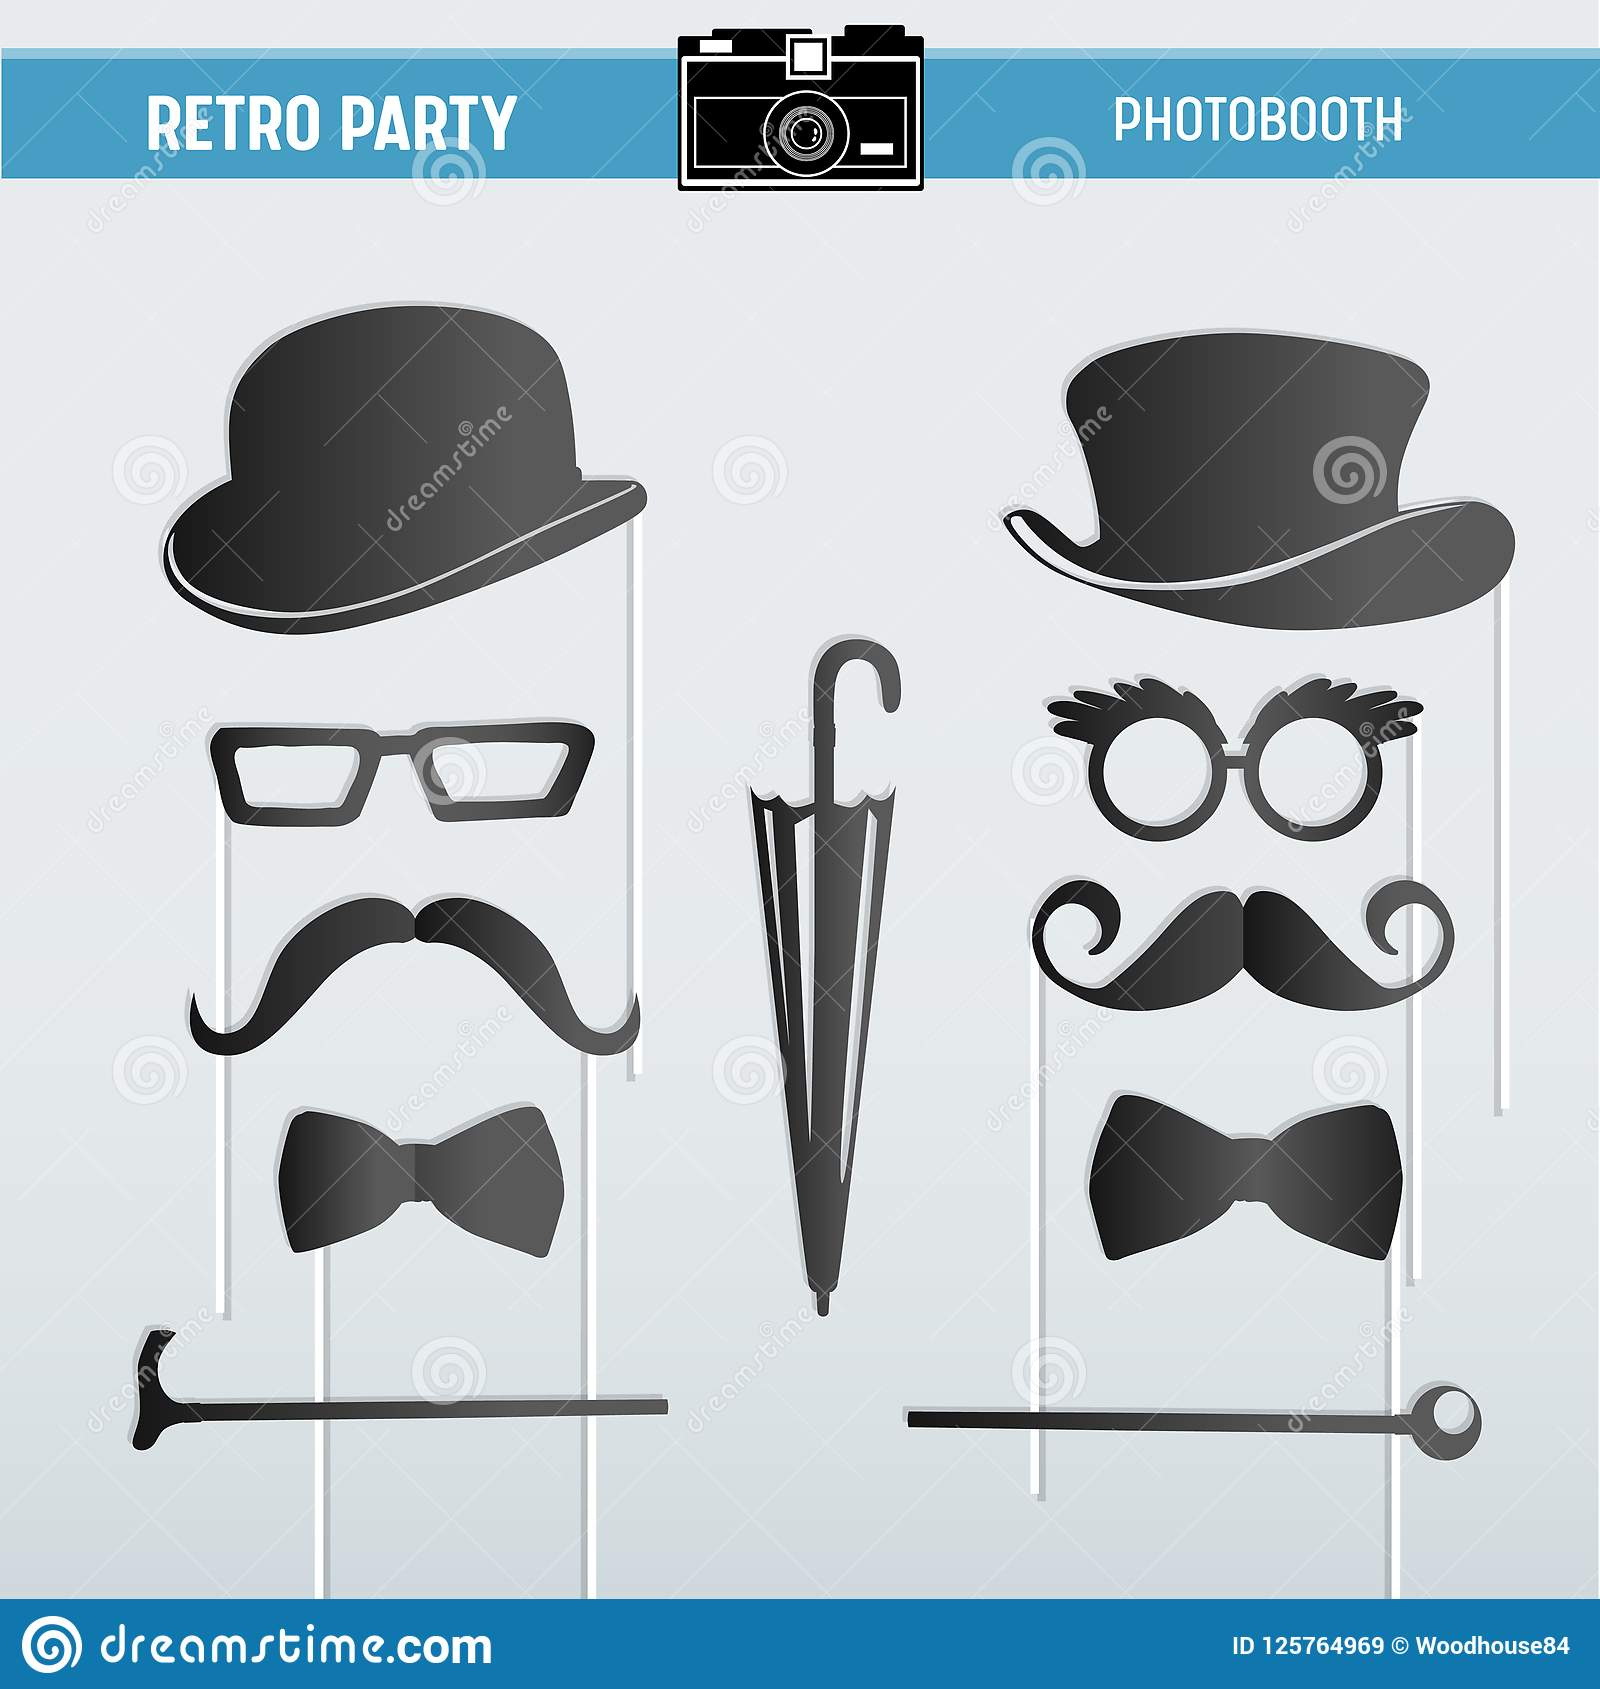 graphic regarding Printable Moustaches identify Movember Retro Get together Printable Gles, Hats, Moustaches